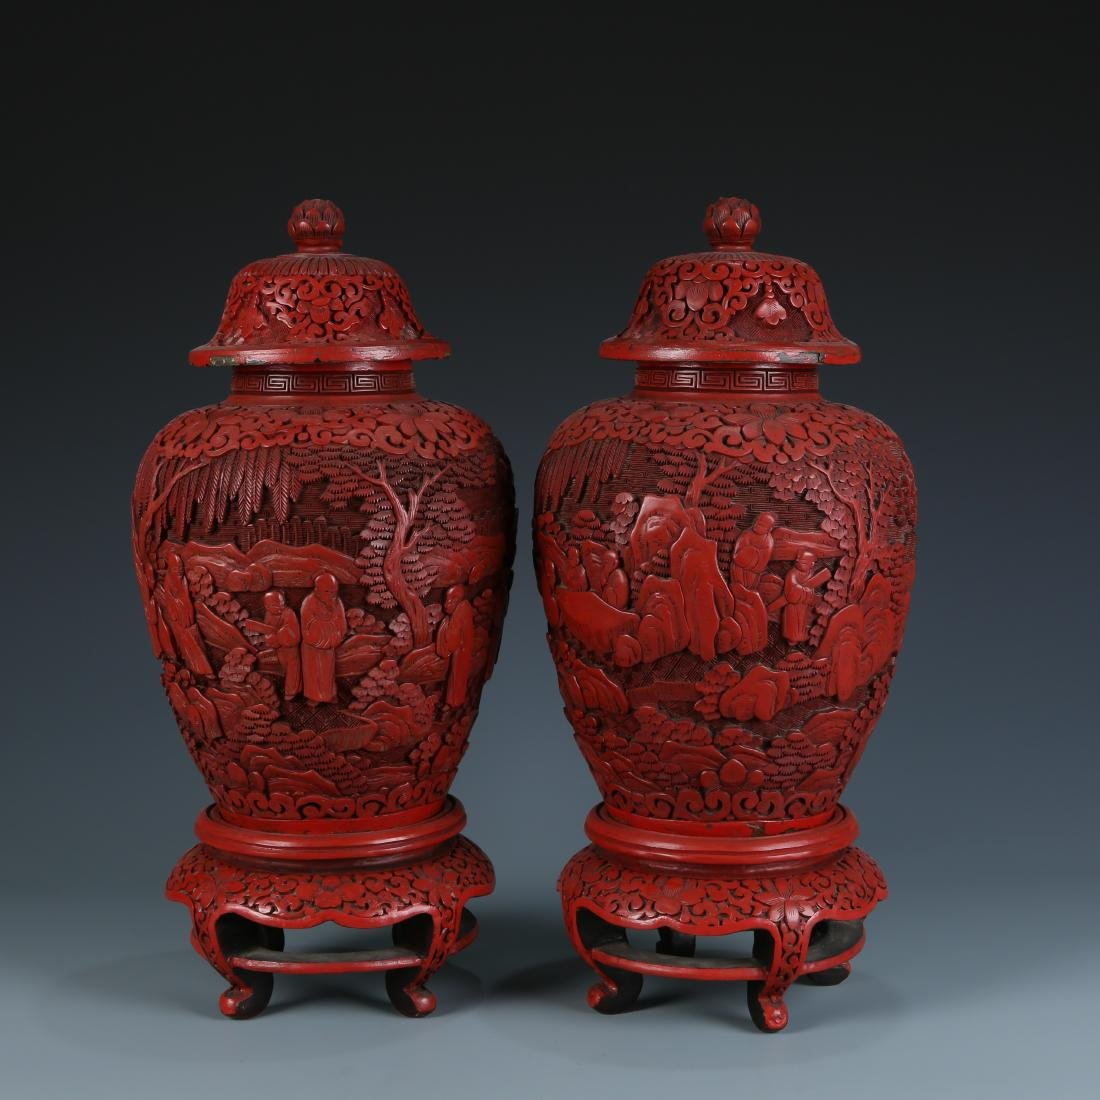 Pair of Cinnabar Baluster Vases with Cover